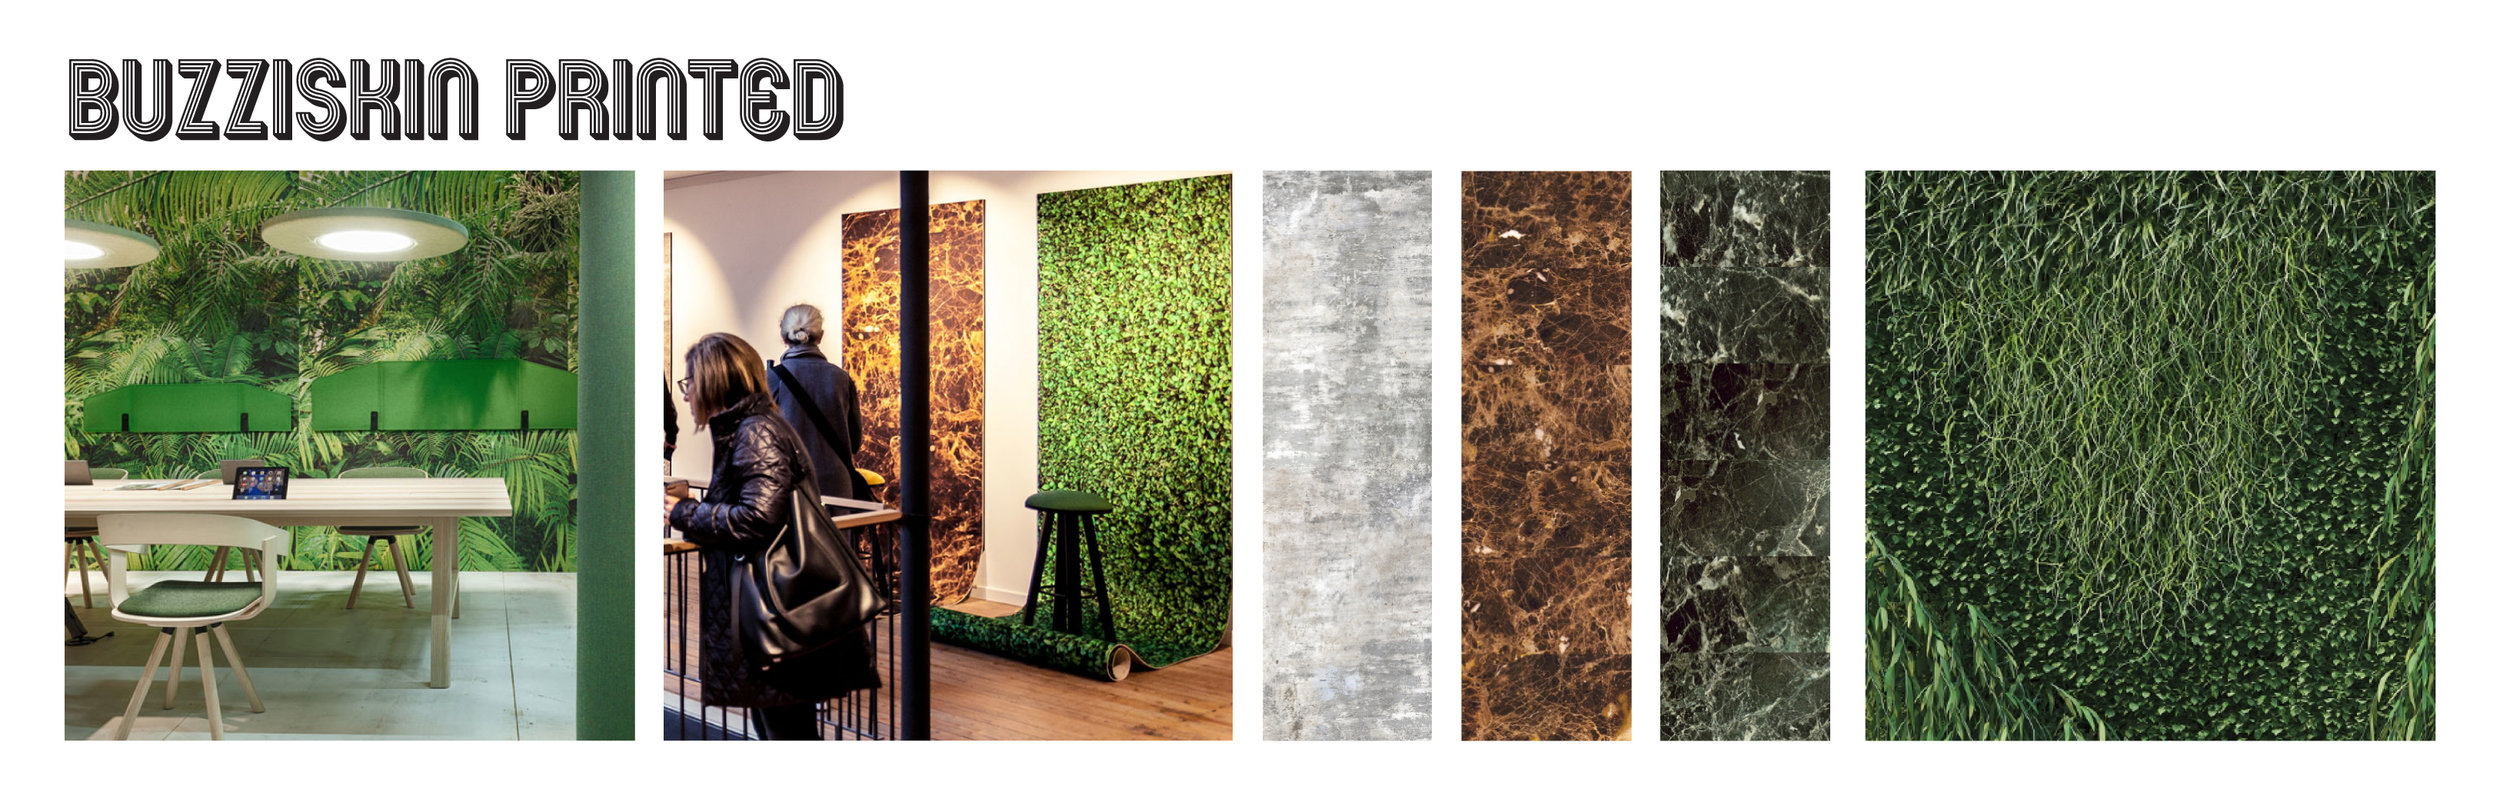 Customizable wall skin to accent a wall and enhance room acoustics - it's a win-win! I love that it also allows you to bring a sense of nature inside to evoke a connection to the outside world while working that 9 to 5 inside.